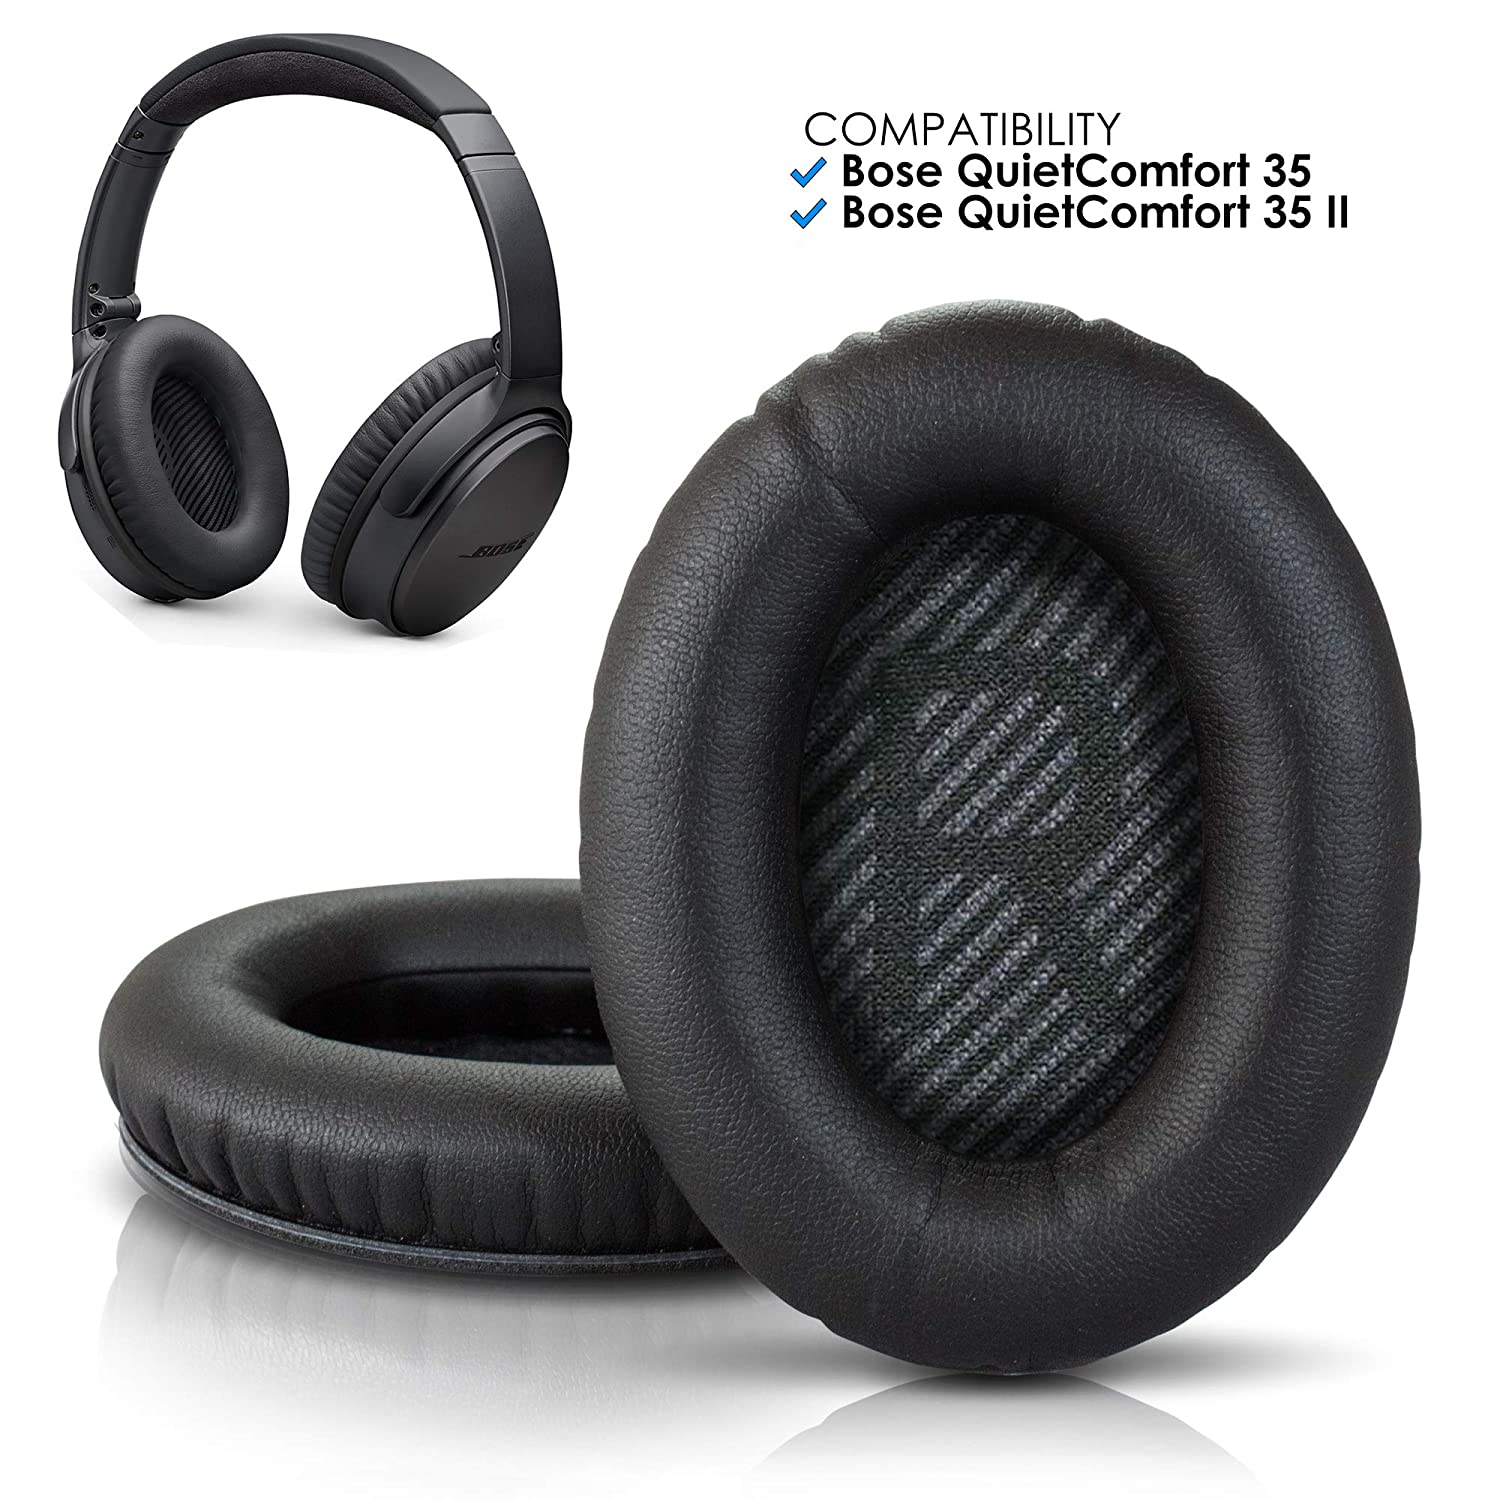 Wicked Cushions Premium Bose QC35 Replacement Ear Pads - Compatible with  QuietComfort 35 & 35 ii | Black